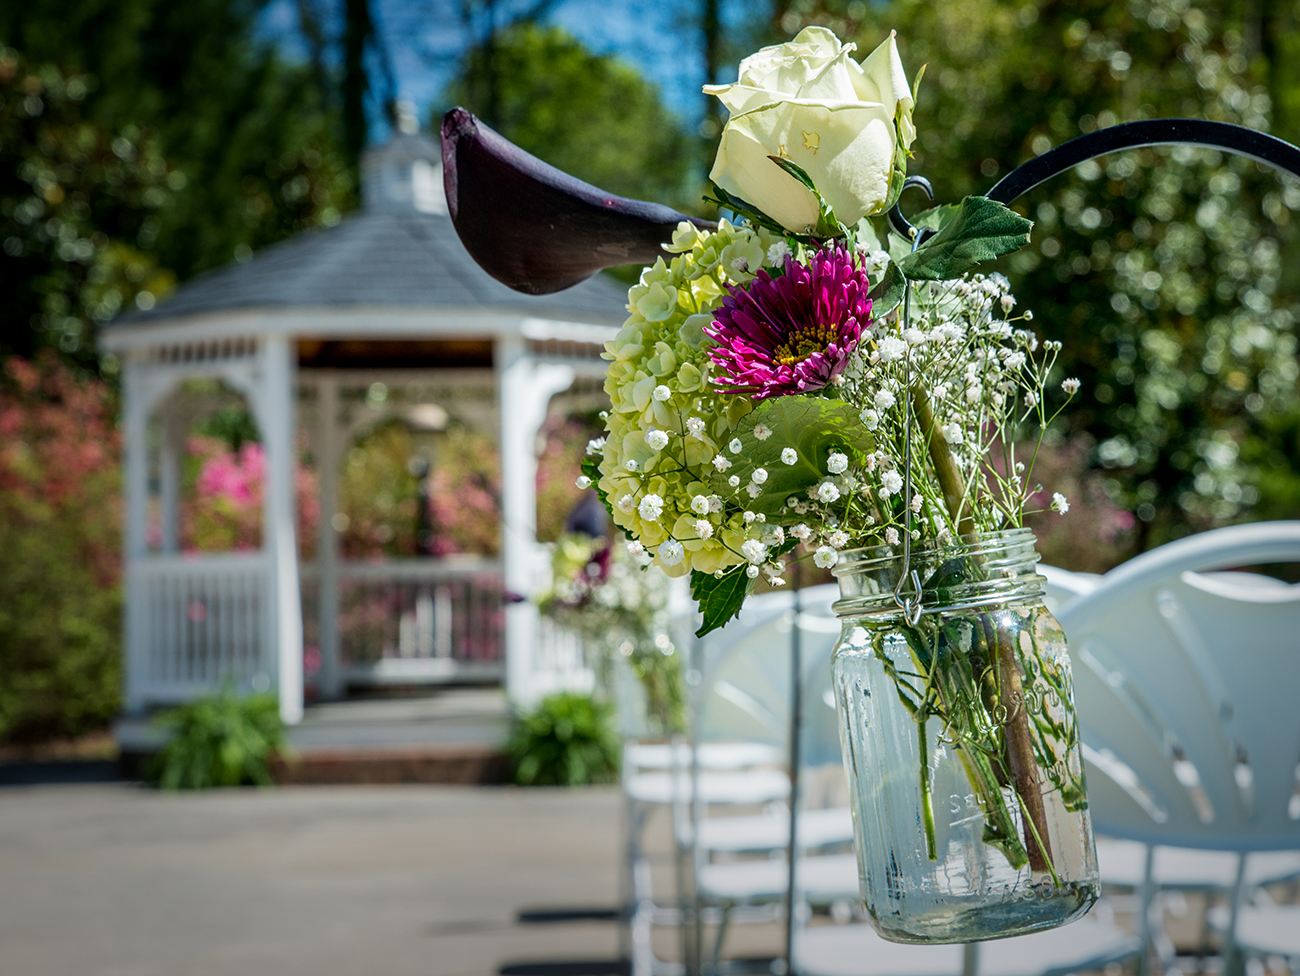 Gazebo at a Tuscany Garden wedding in Greensboro, NC